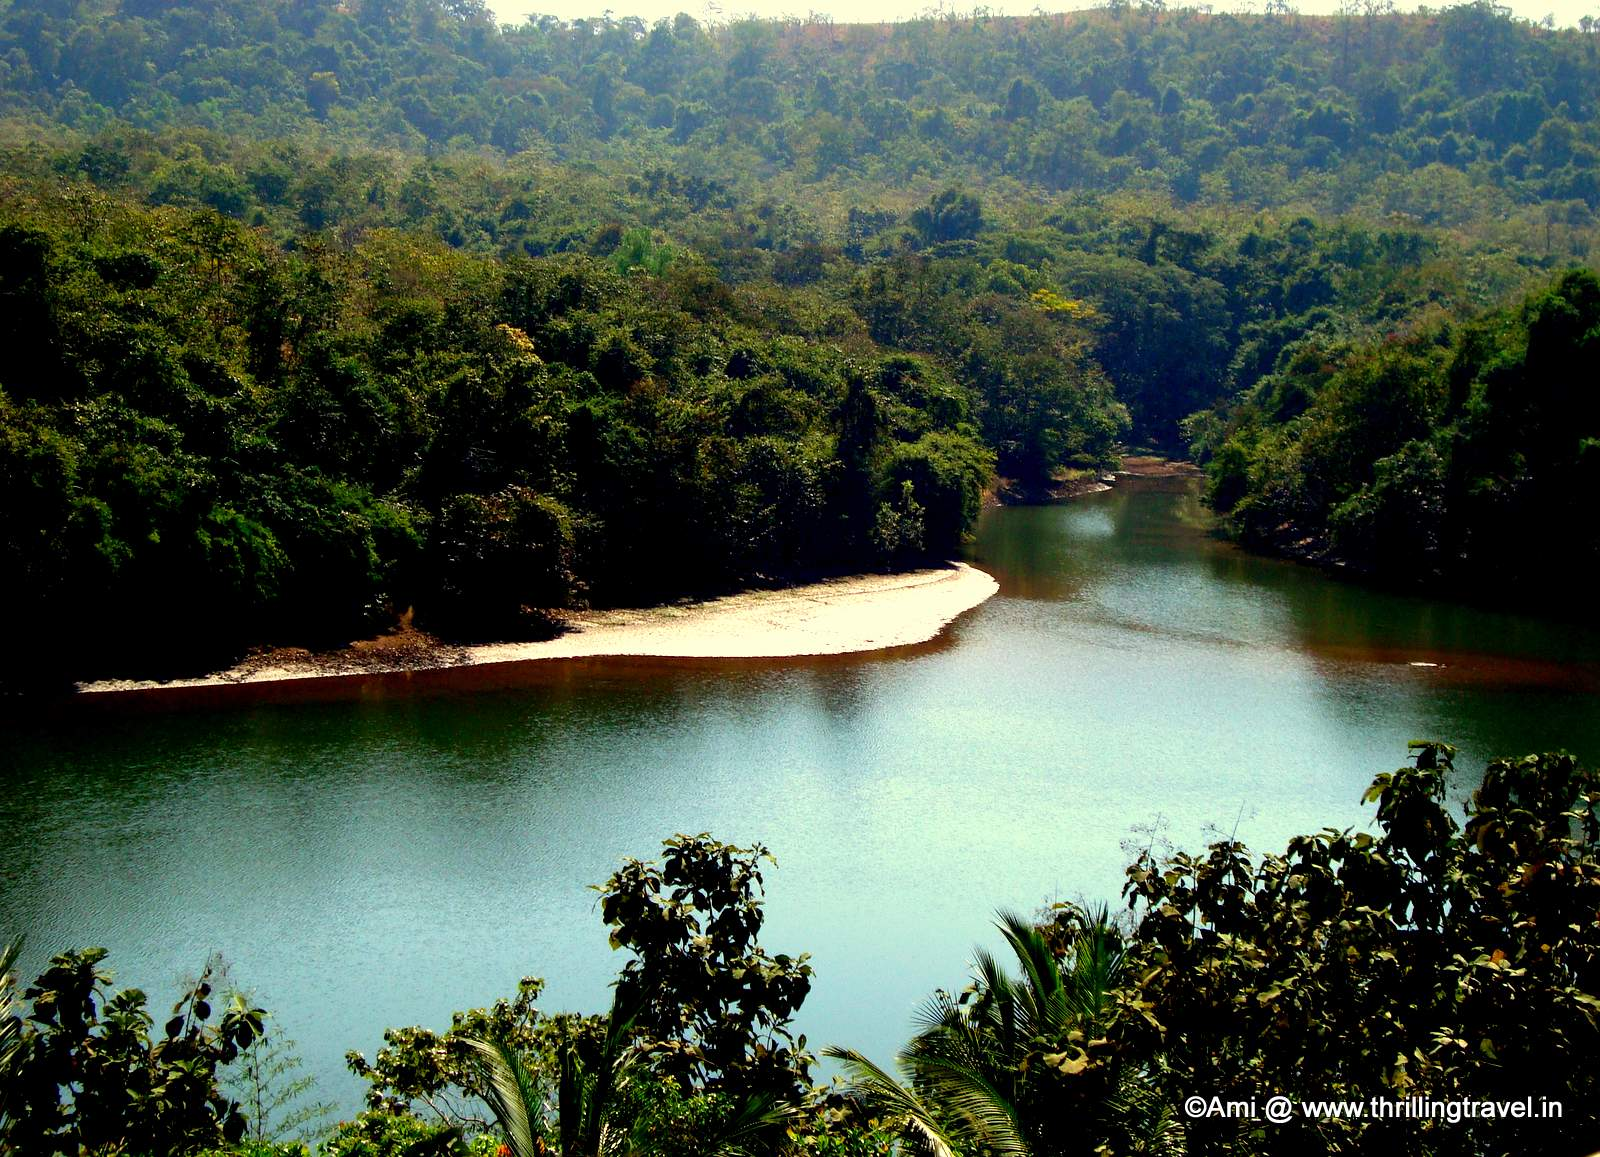 View of the Kundalika River, Kolad